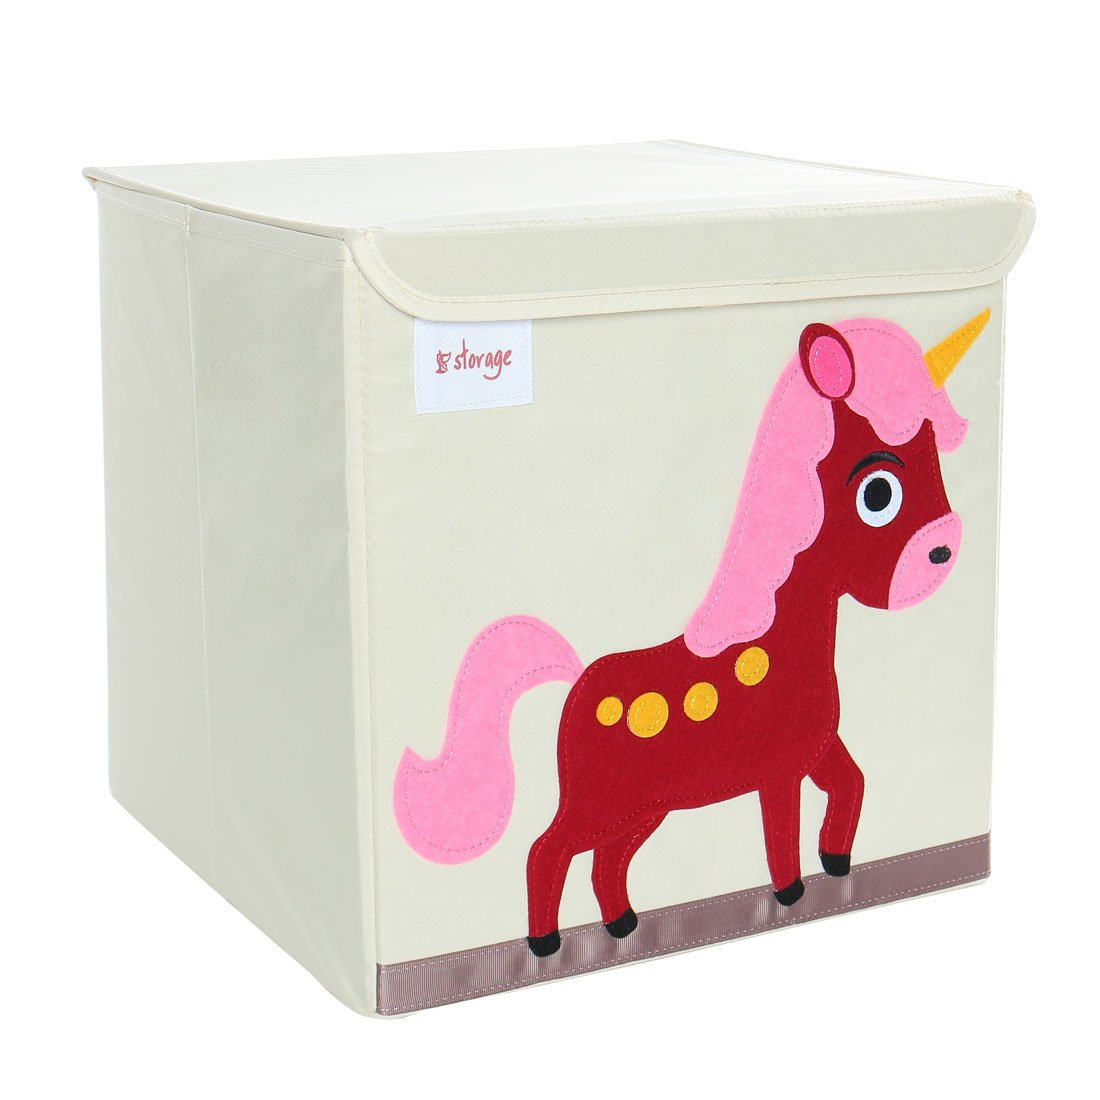 PiccoCasa Foldable Toy Storage Bins Square Cartoon Animal Storage Box Eco-Friendly Fabric Storage Cubes Organizer for Bedroom Playroom Wine Red Horse Lid 13''x13''x13.6''